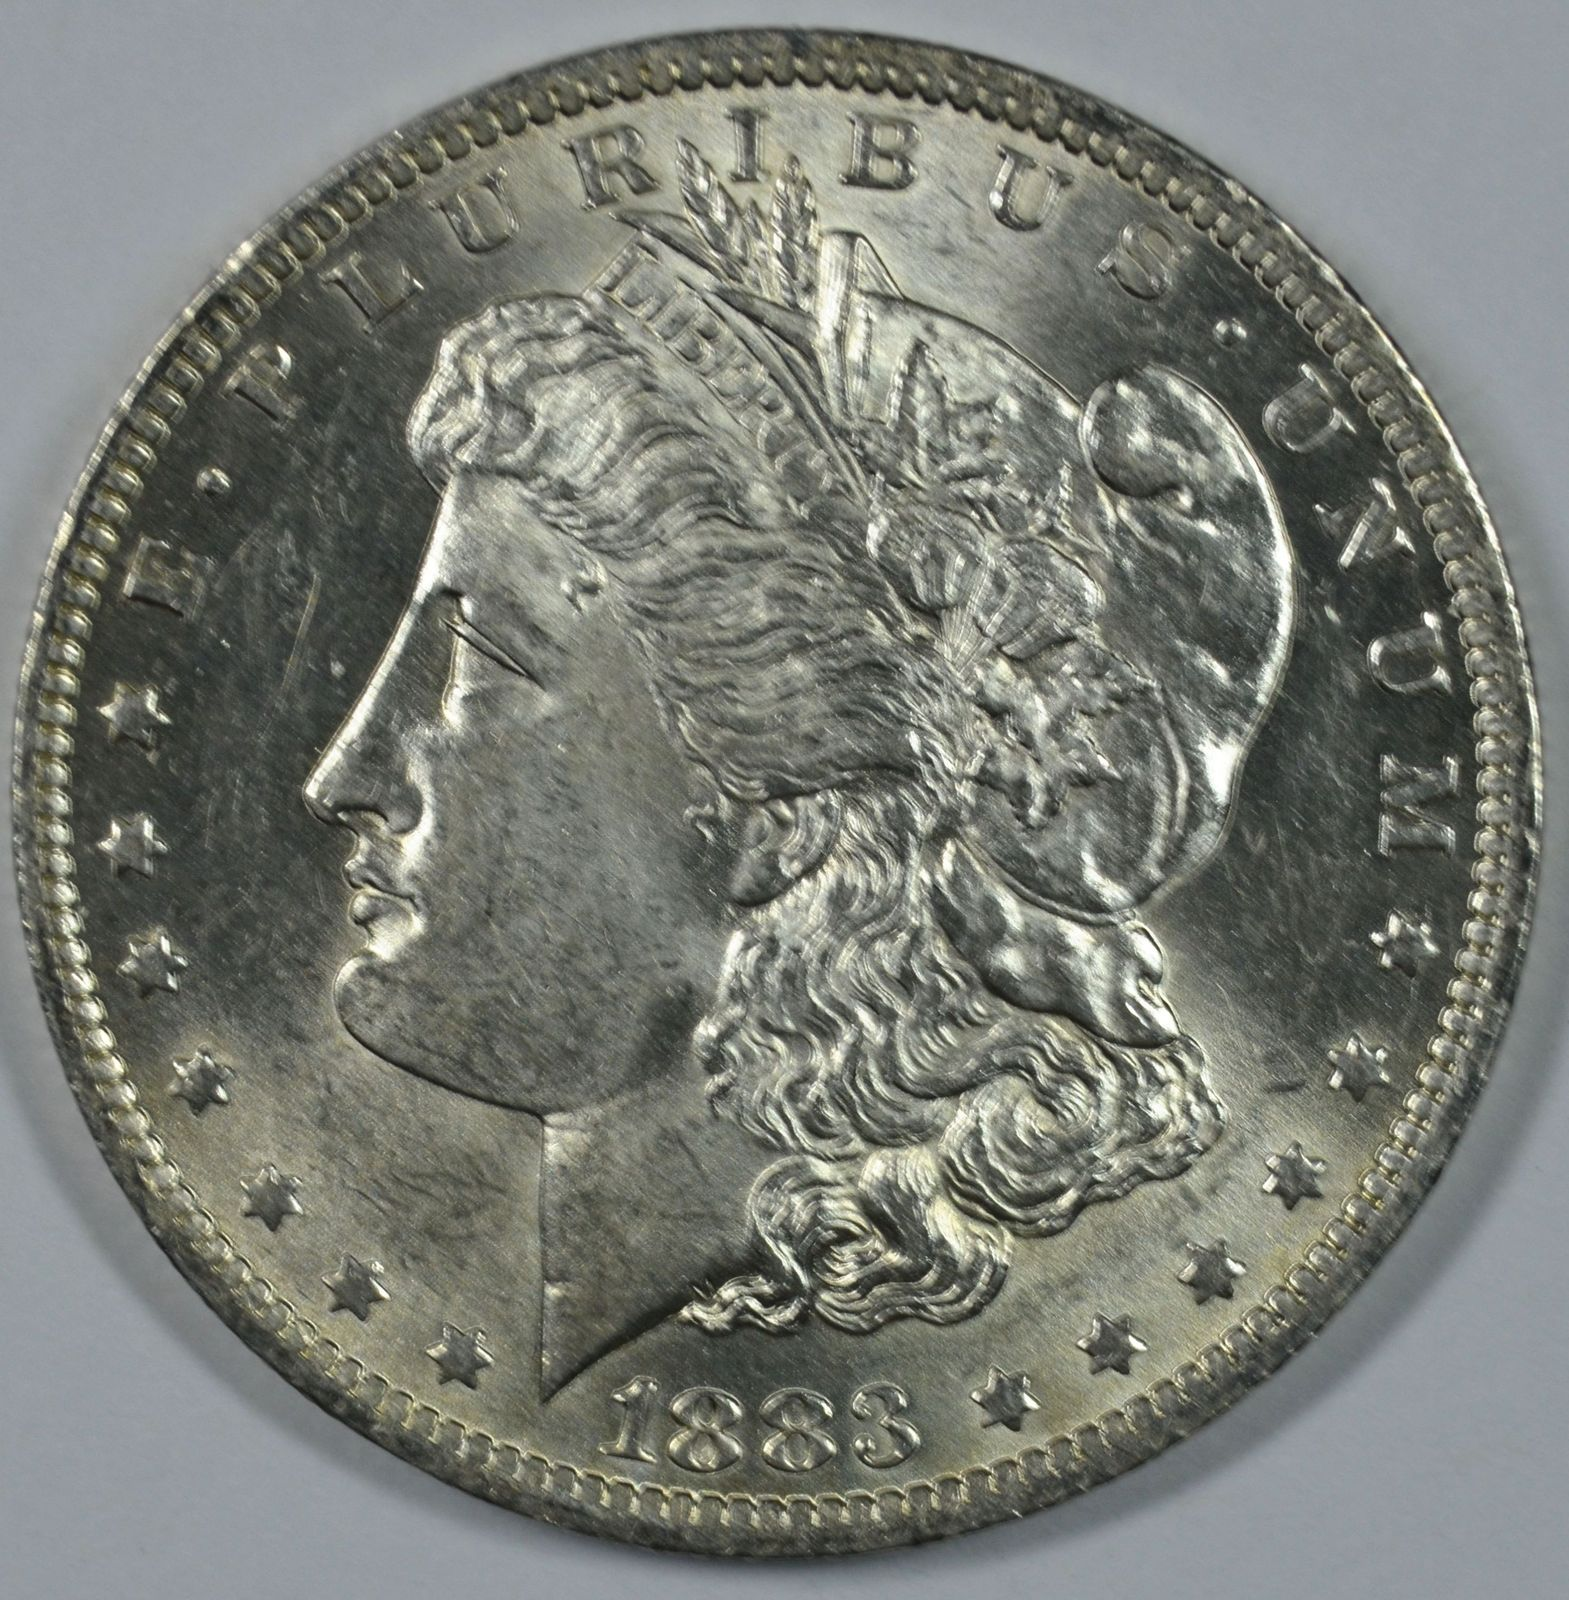 Primary image for 1883 O Morgan silver dollar BU details